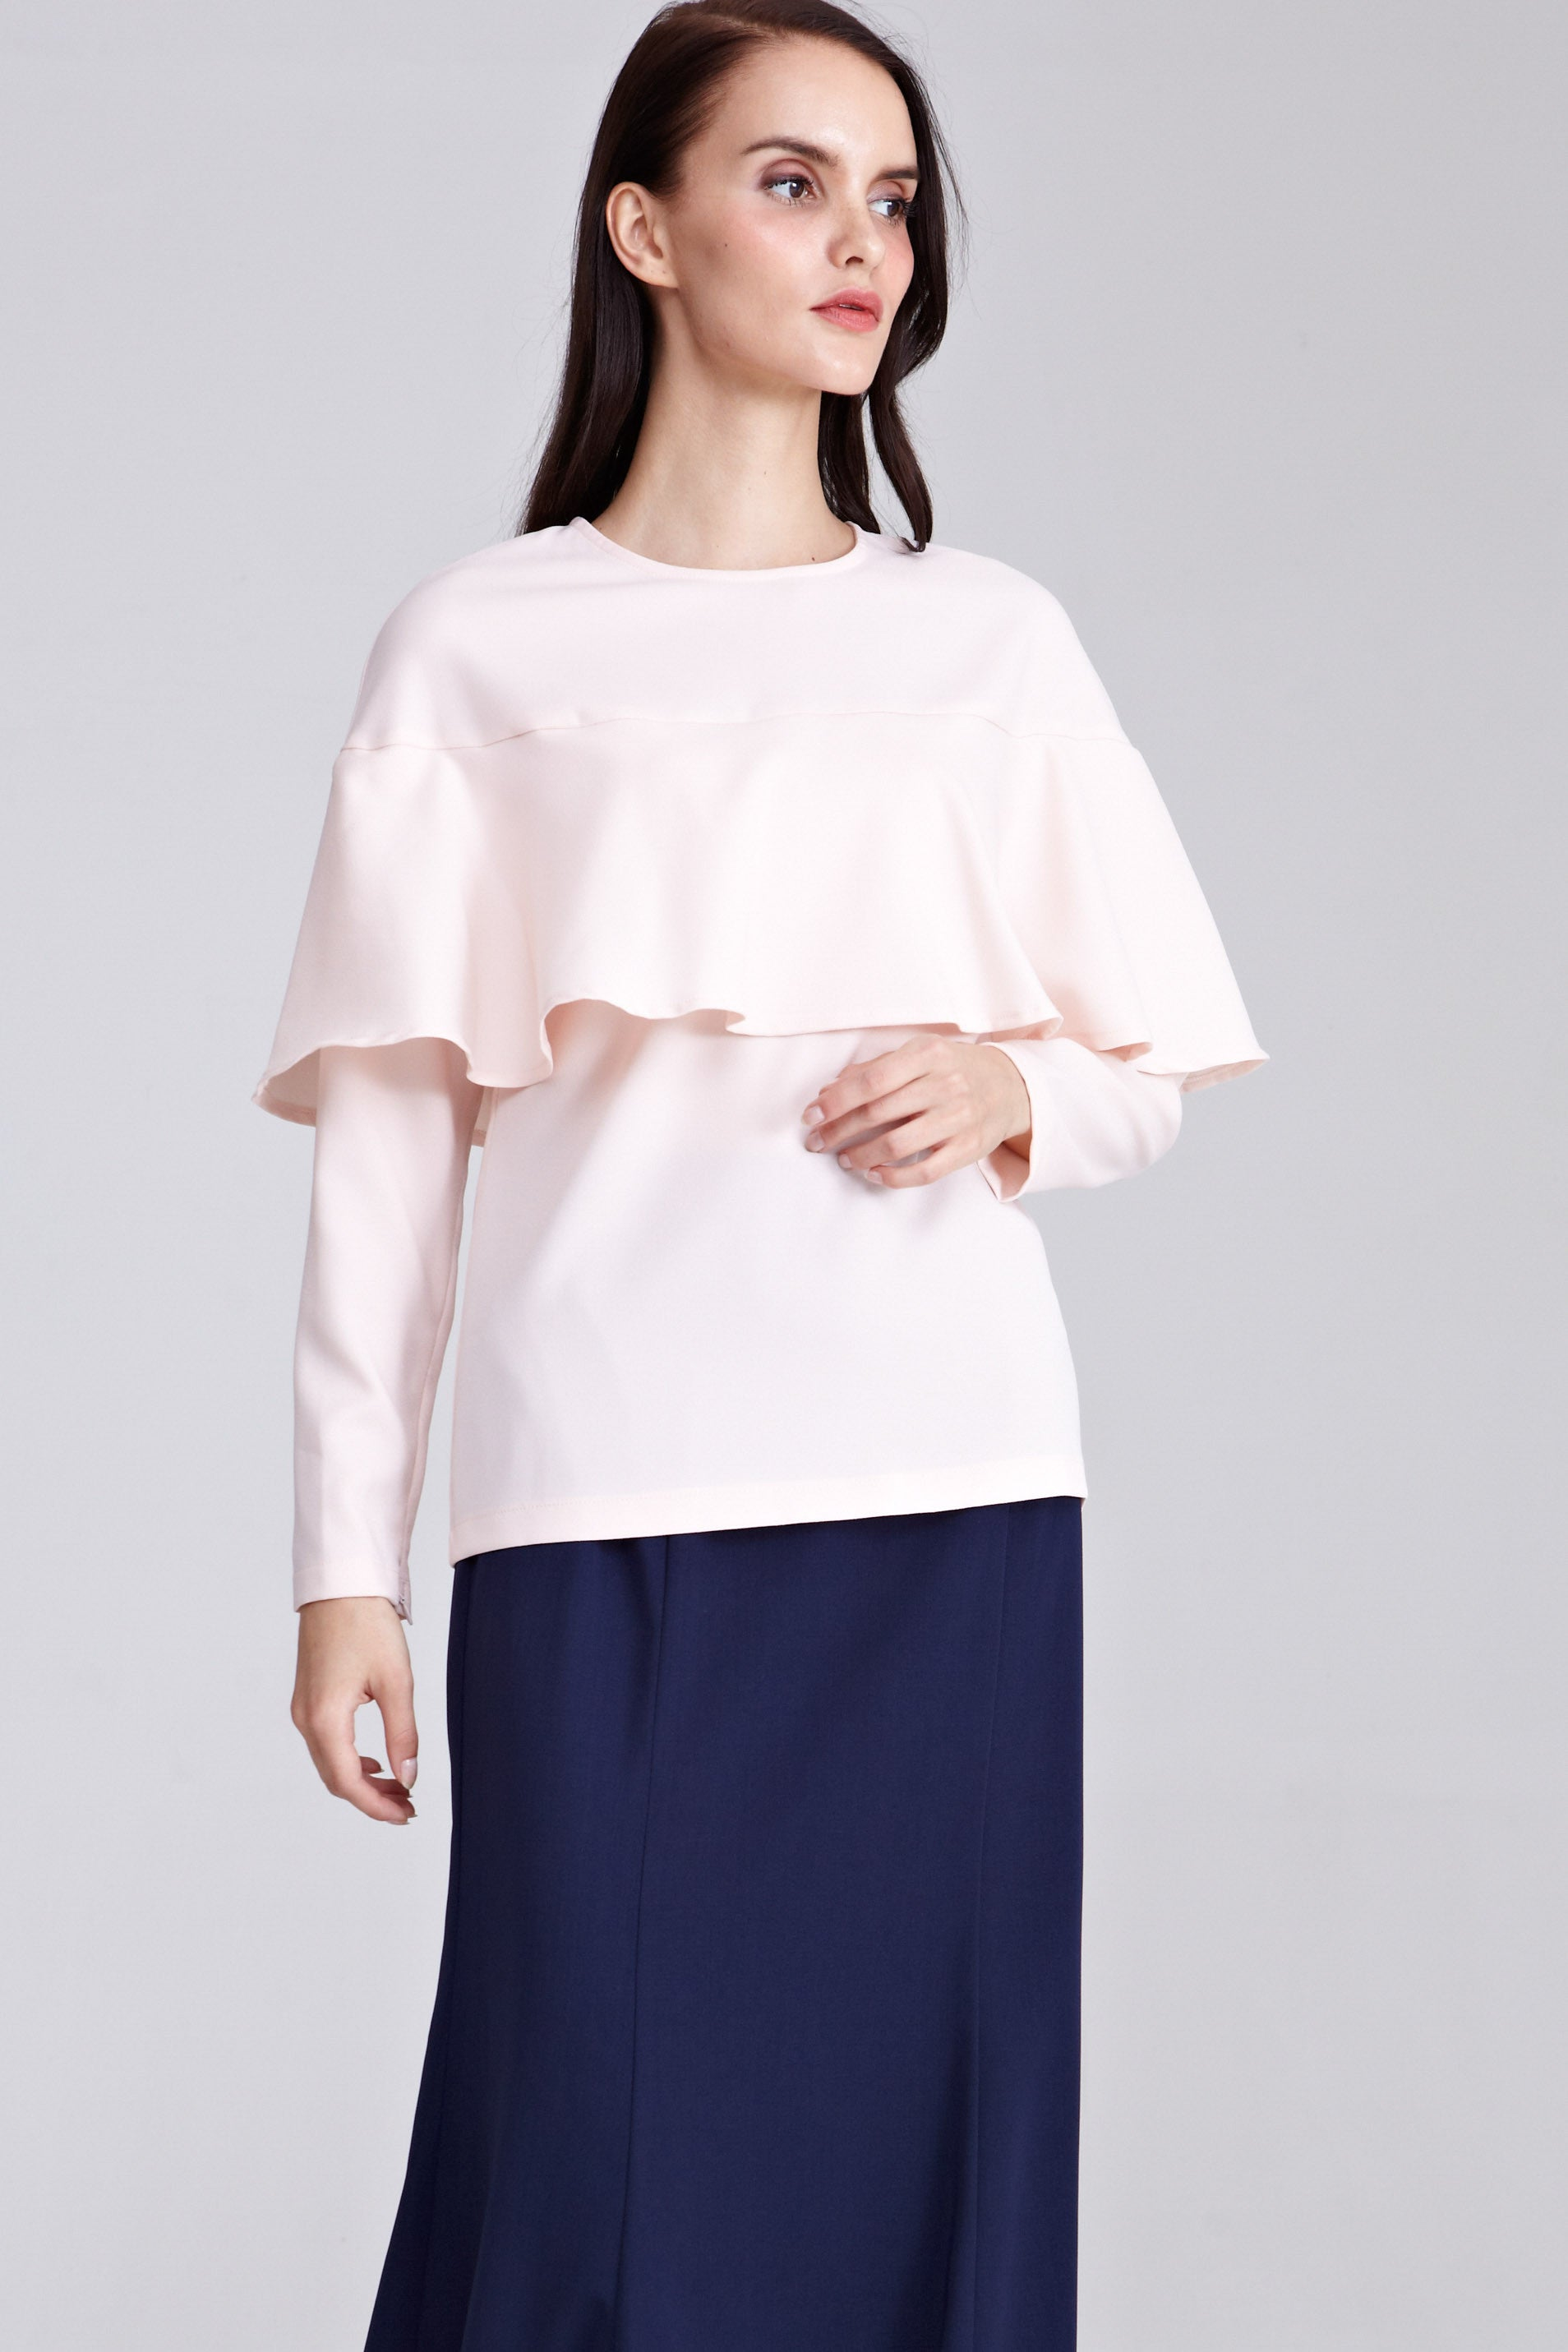 Https Daily Products Fire Fries Gift Card Tania Blouse In White Beatrice Clothing 1 T3 0271v1517165505